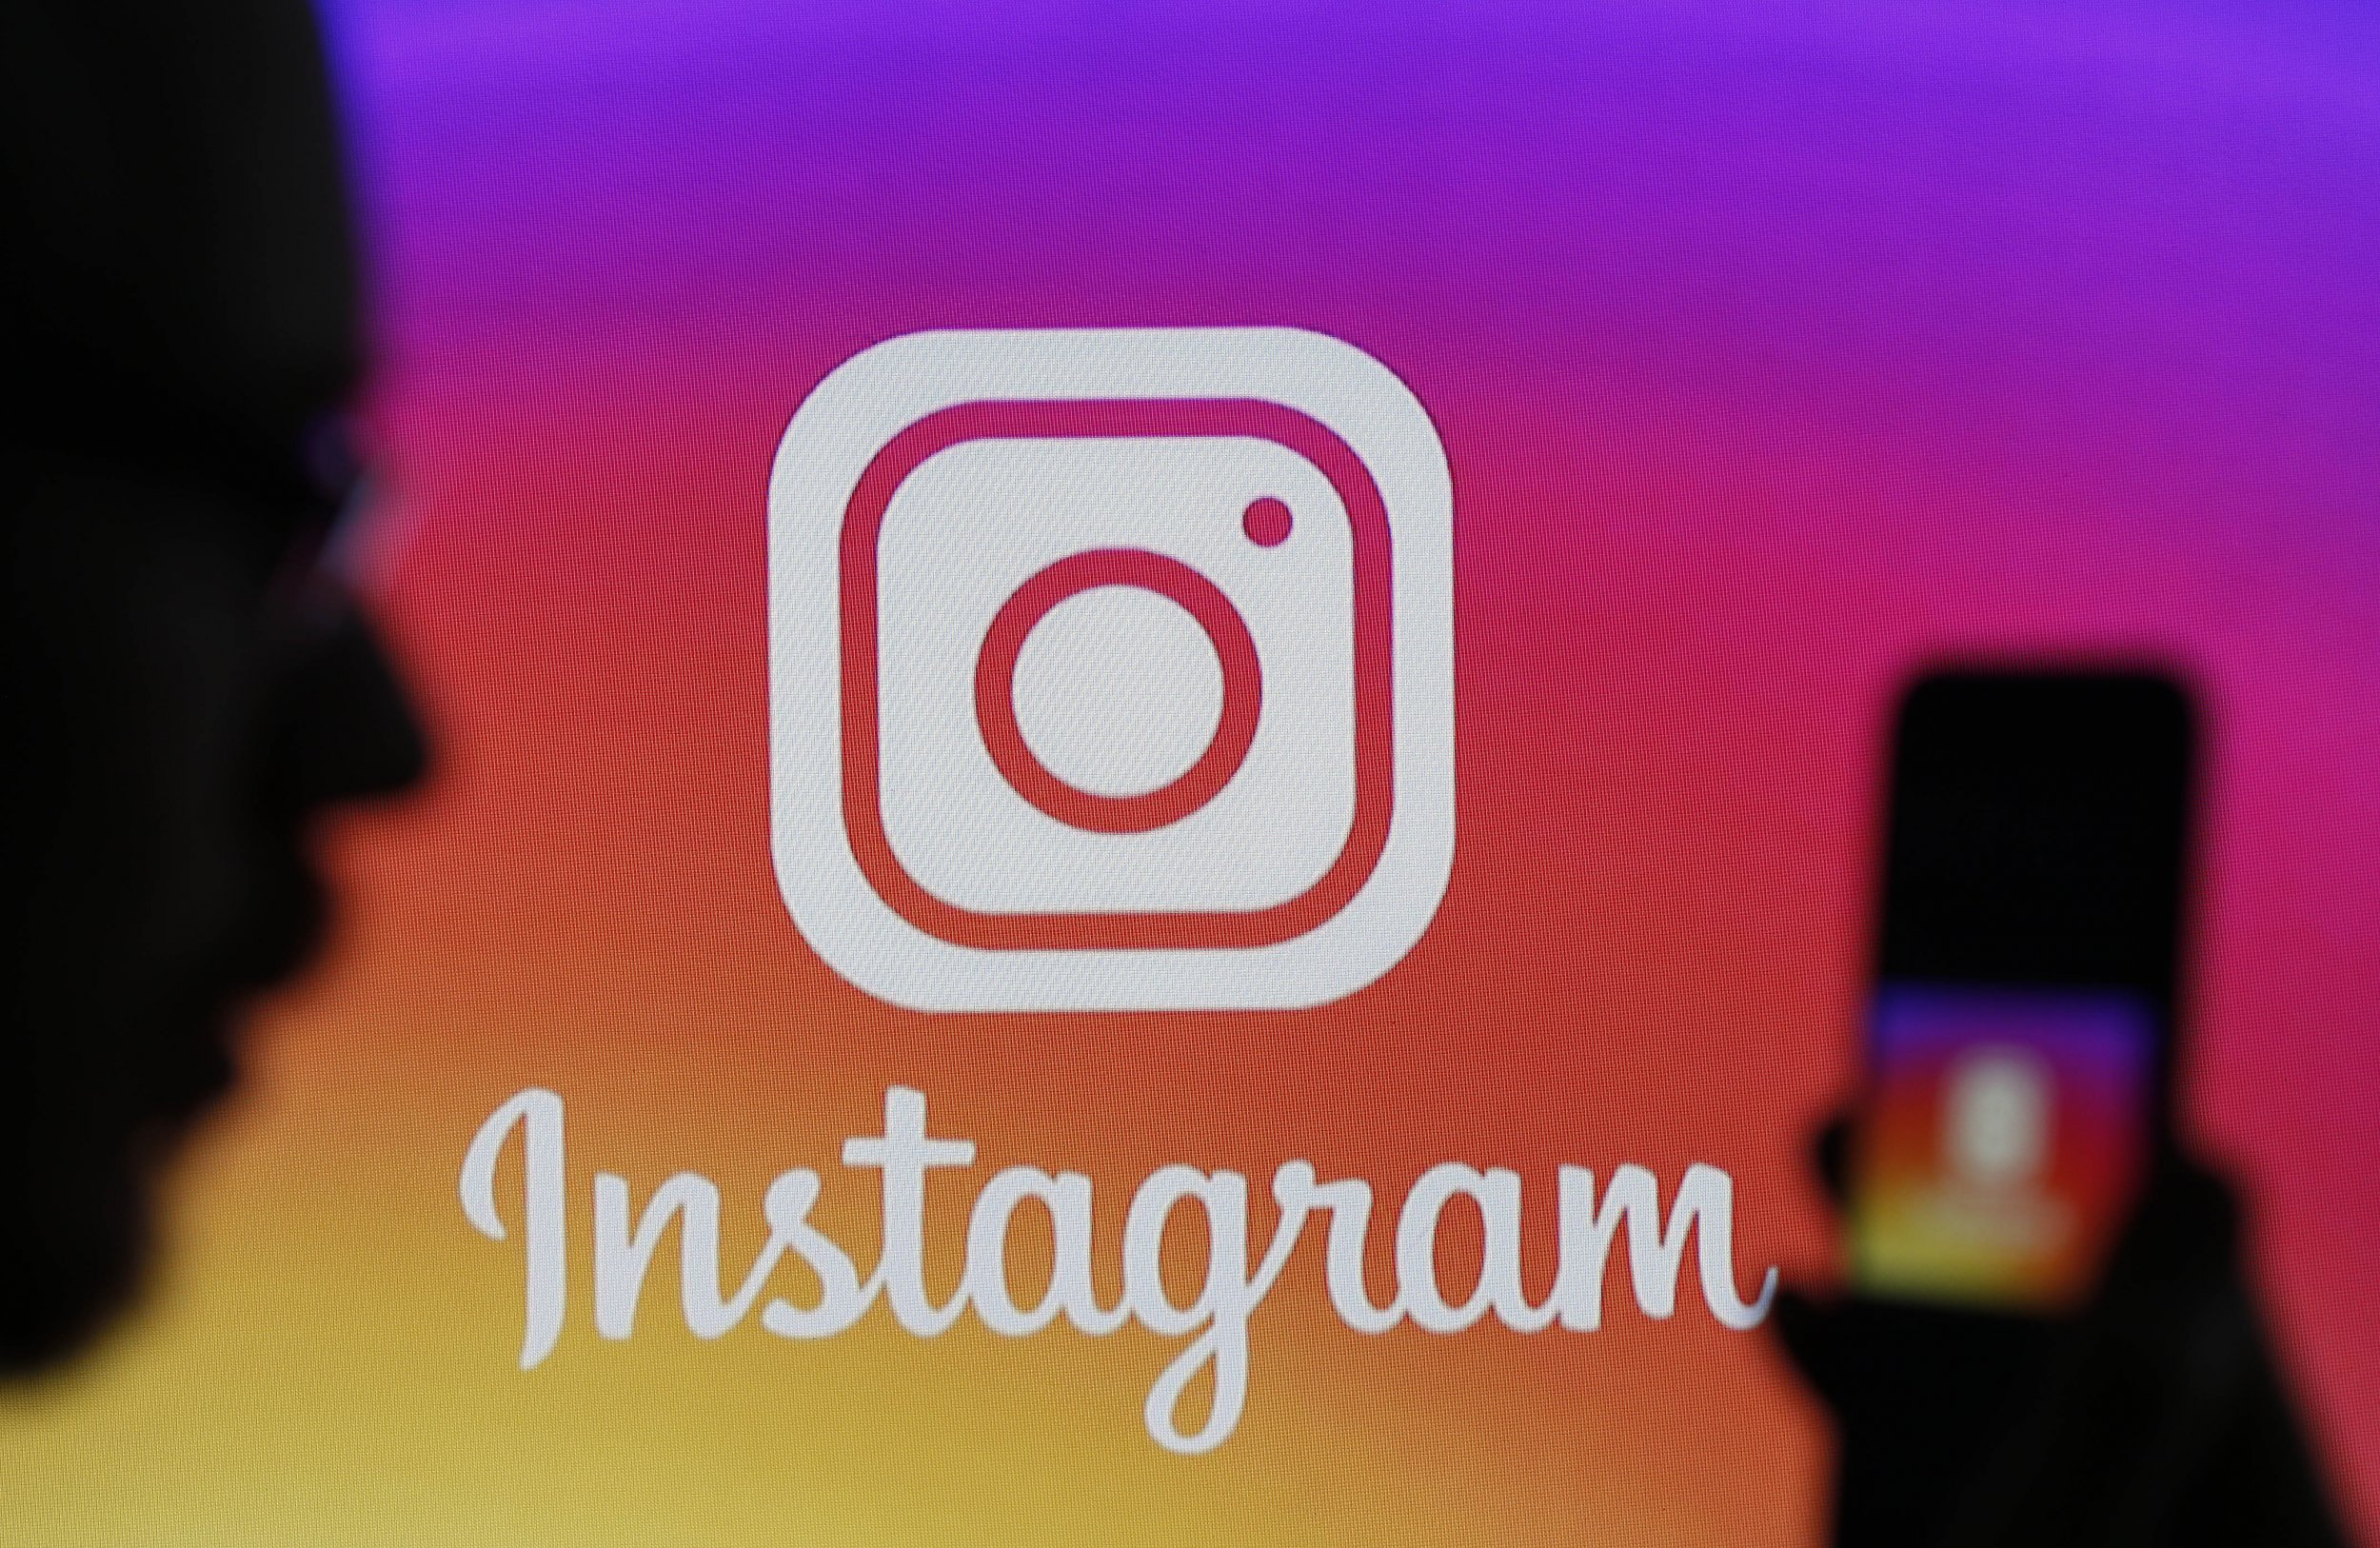 instagram passwords stores wrong